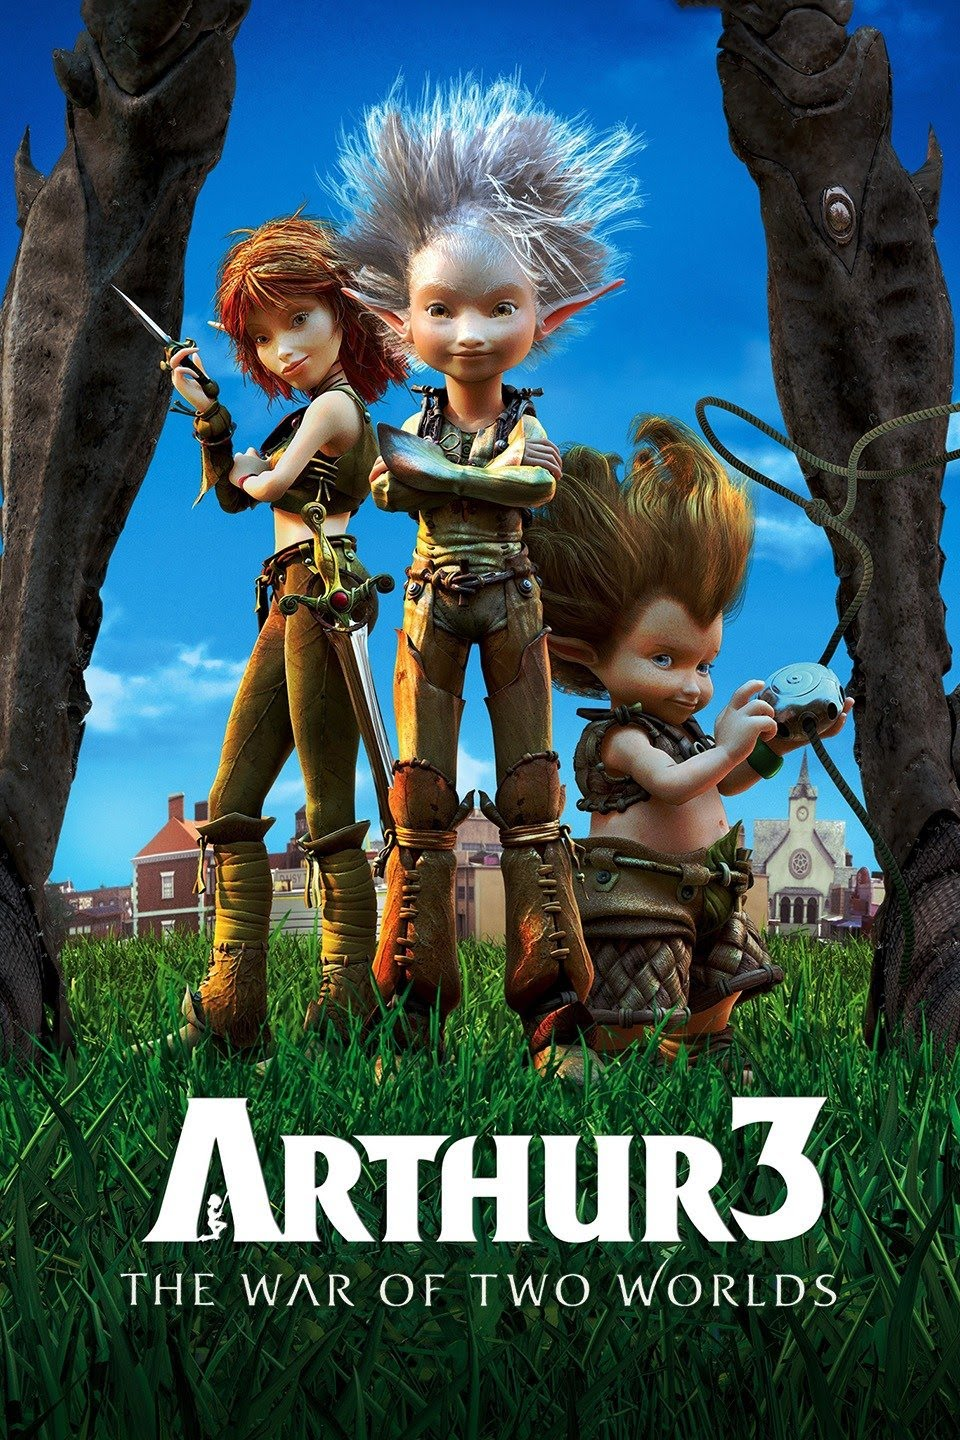 Download Arthur 3: The War of the Two Worlds (2010) Full Movie in Hindi 480p | 720p